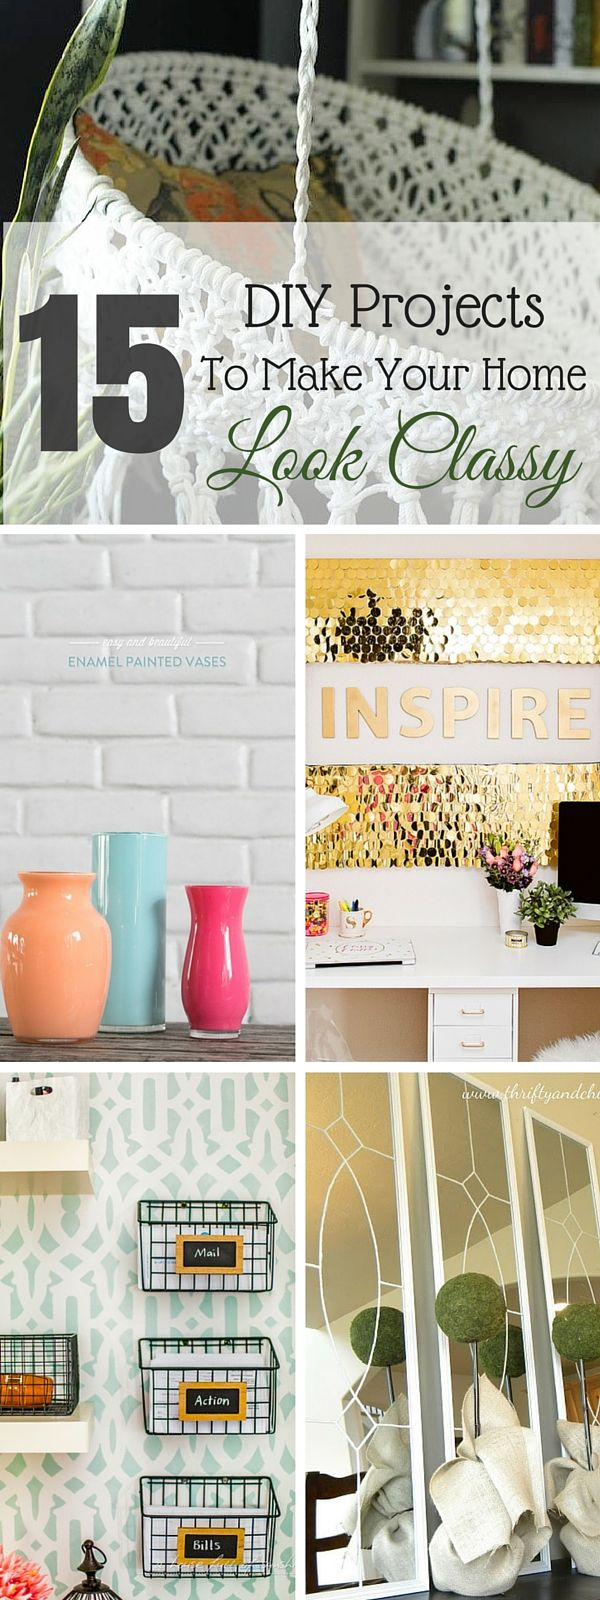 119 best home ideas images on pinterest kitchen home and